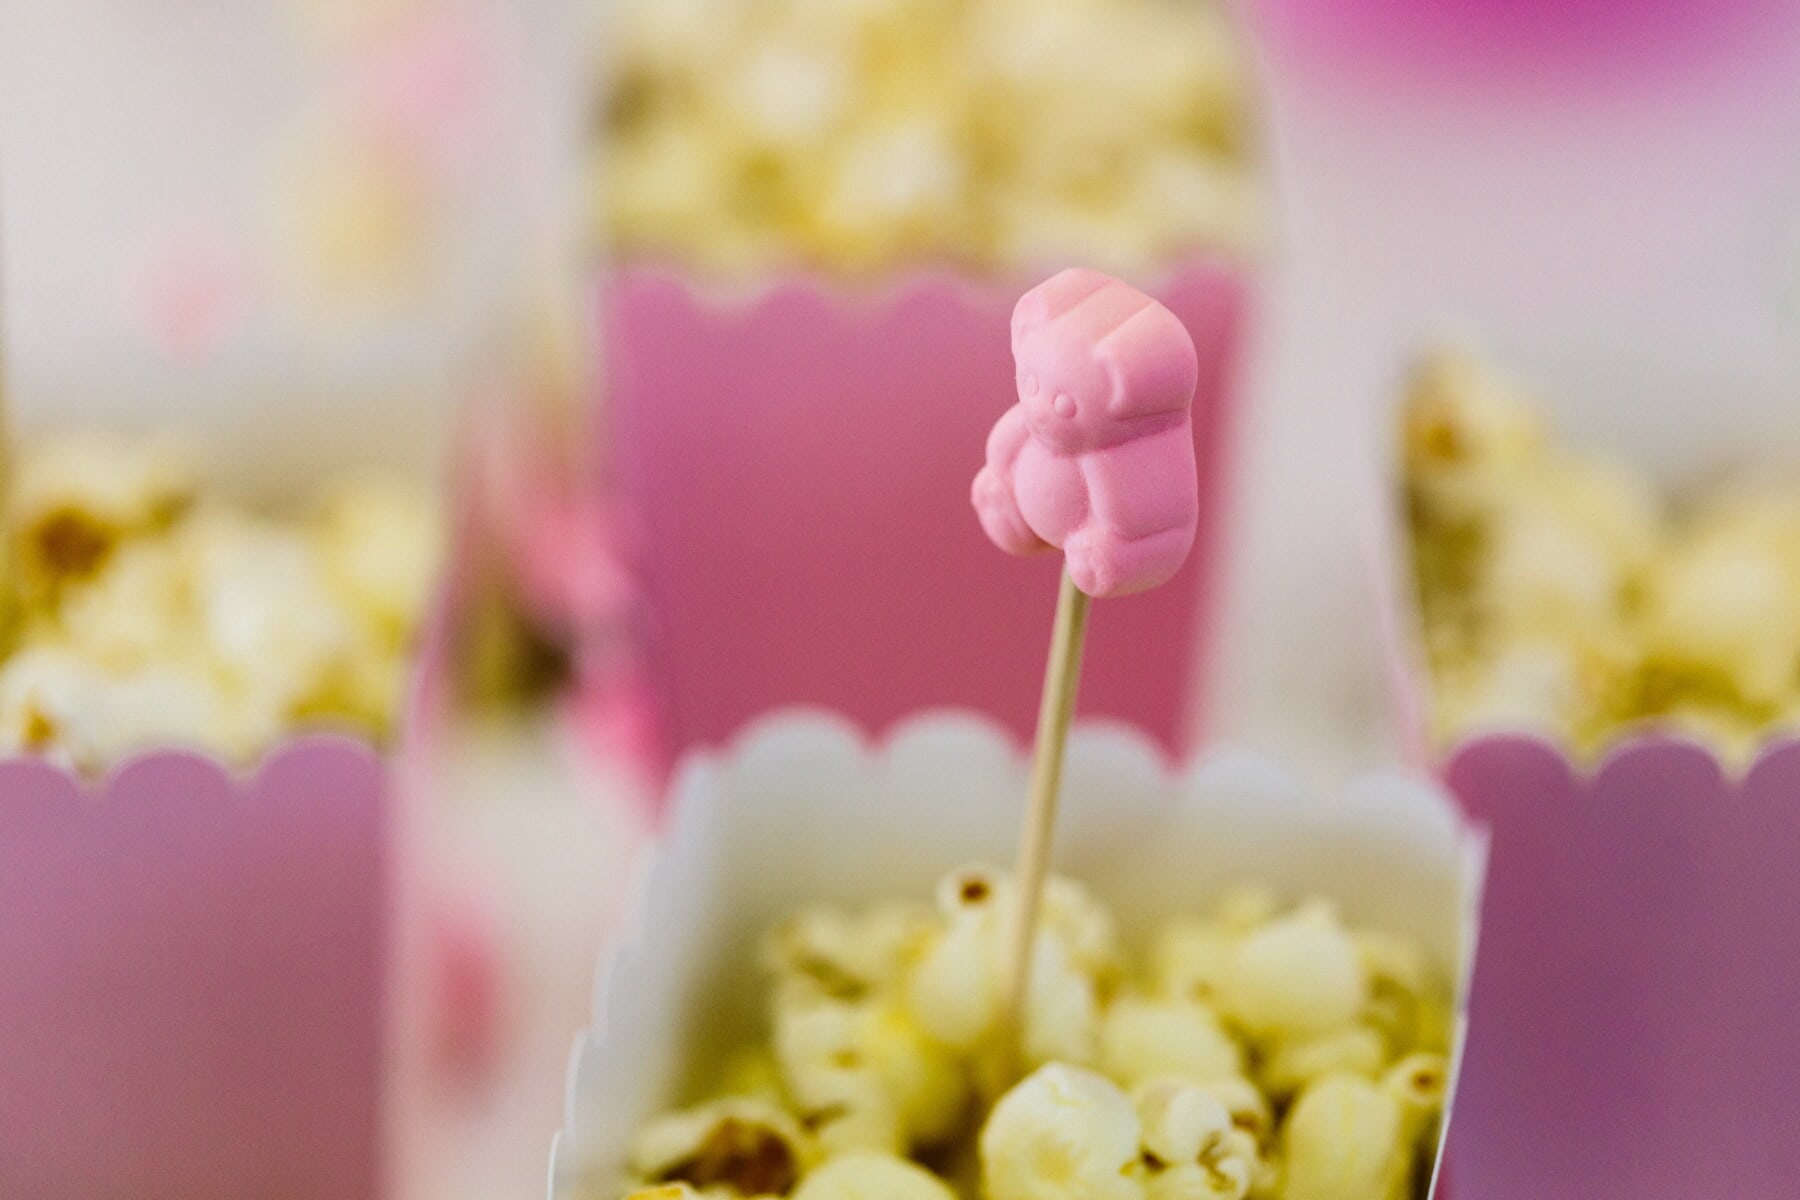 popcorn, pinkish, teddy bear toy, decorative, lollipop, pink, food, delicious, traditional, blur